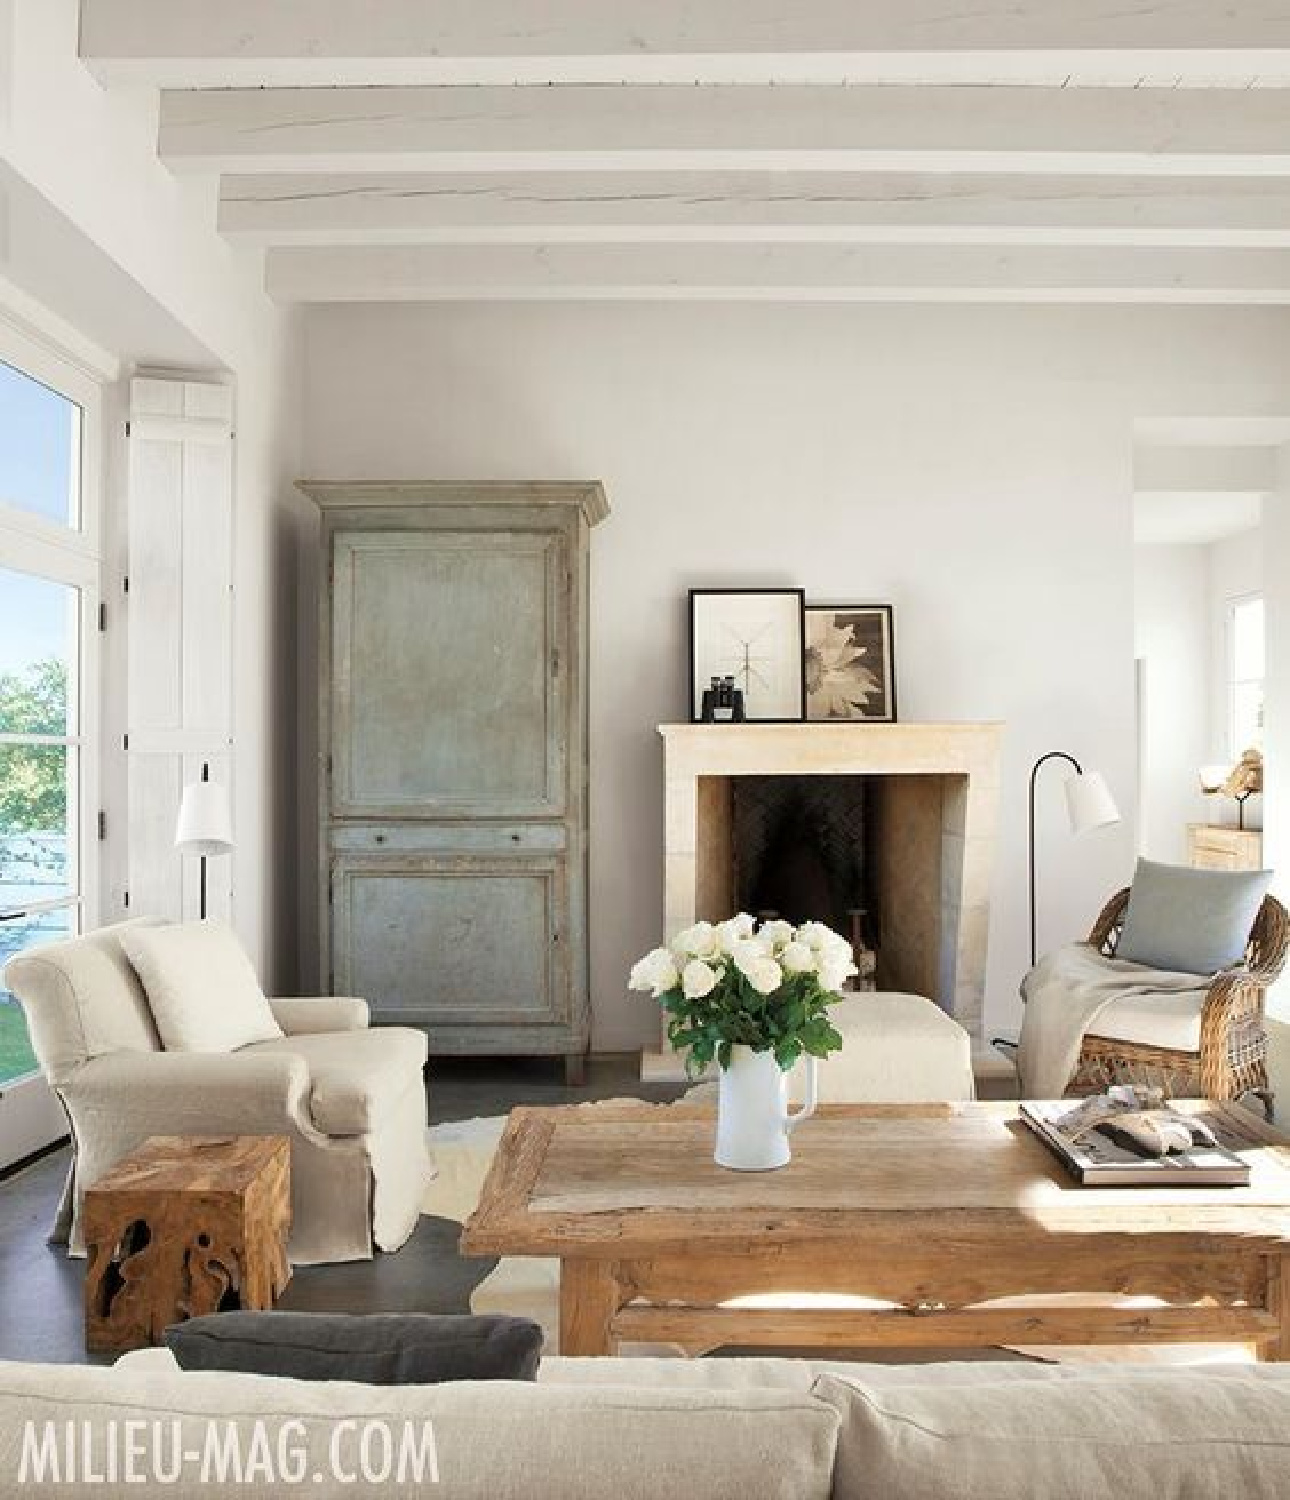 Modern farmhouse living room with French Country decor by Eleanor Cummings. Come score ideas for a Timeless and Tranquil European Country Inspired Look. #europeancountry #interiordesign #frenchcountry